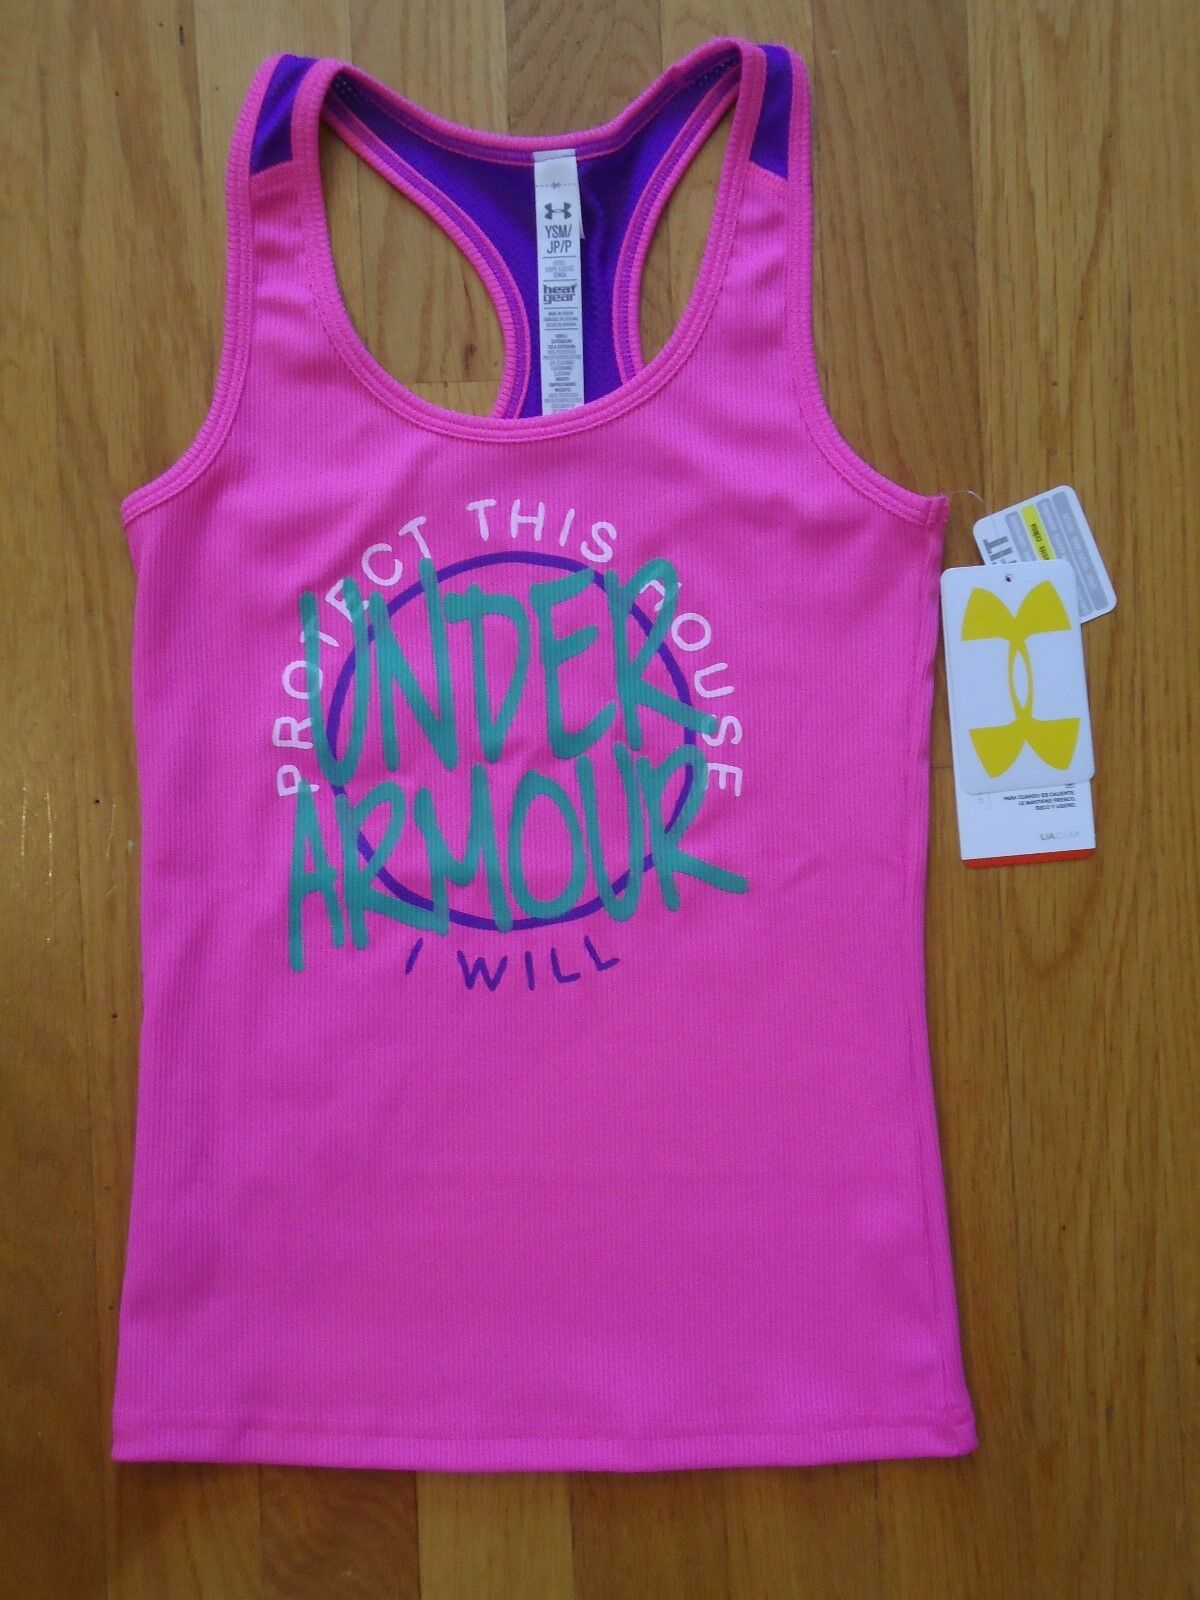 Nwt Under Armour Victory Tank Top Shirt Fitted Pink Girls Small Charged Cotton Tshirt Kaos Size S 1 Of 2free Shipping